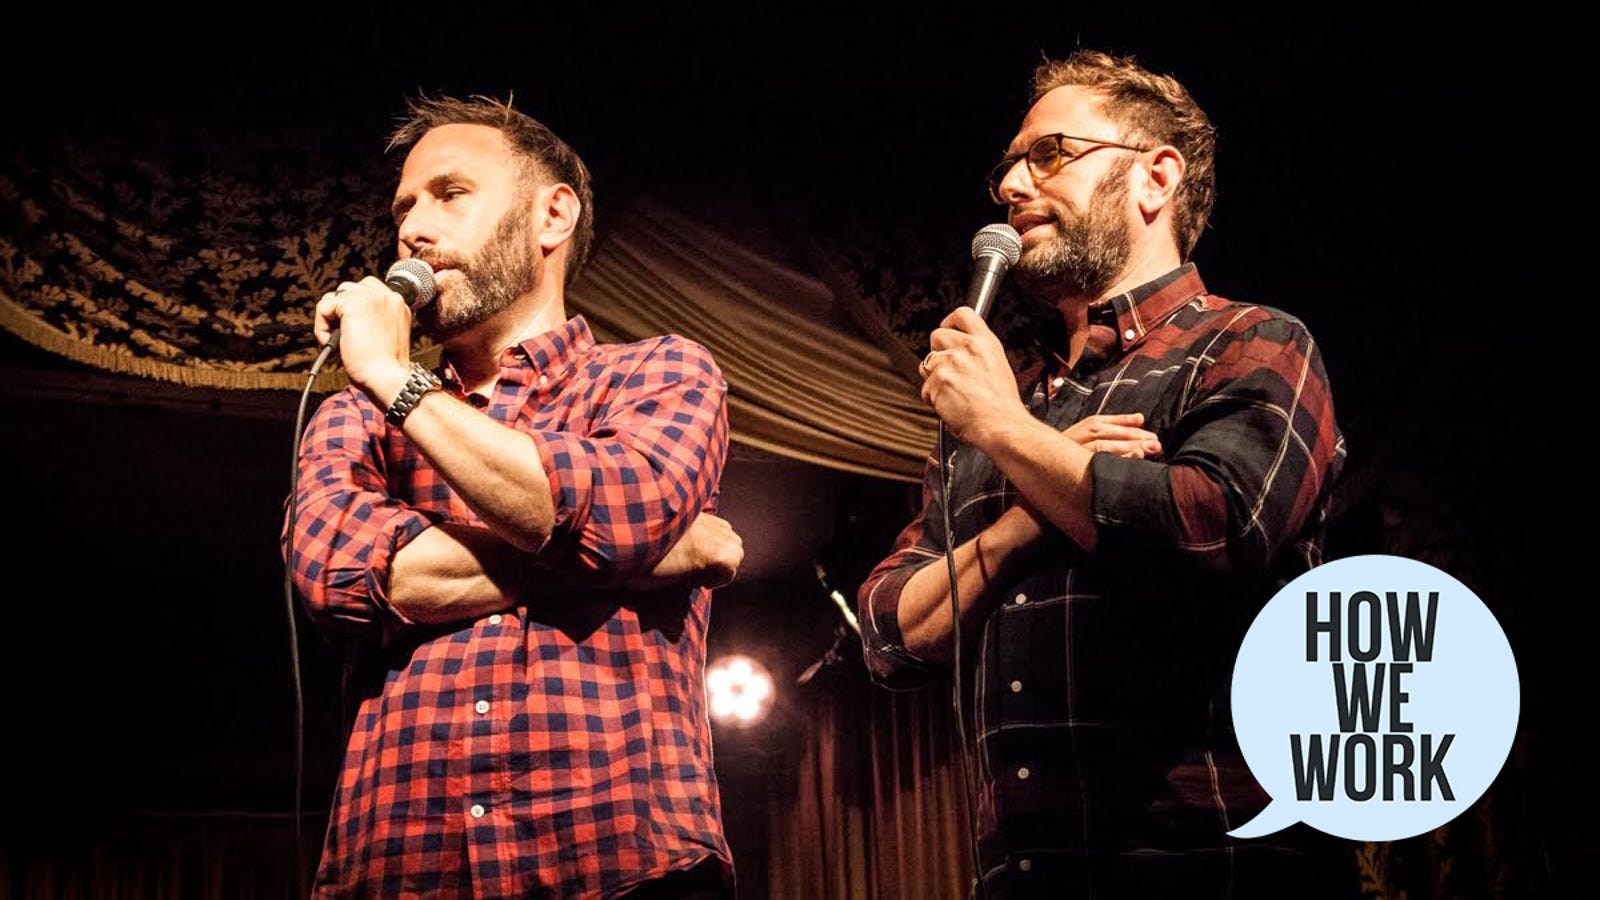 We're The Sklar Brothers, And This Is How We Work